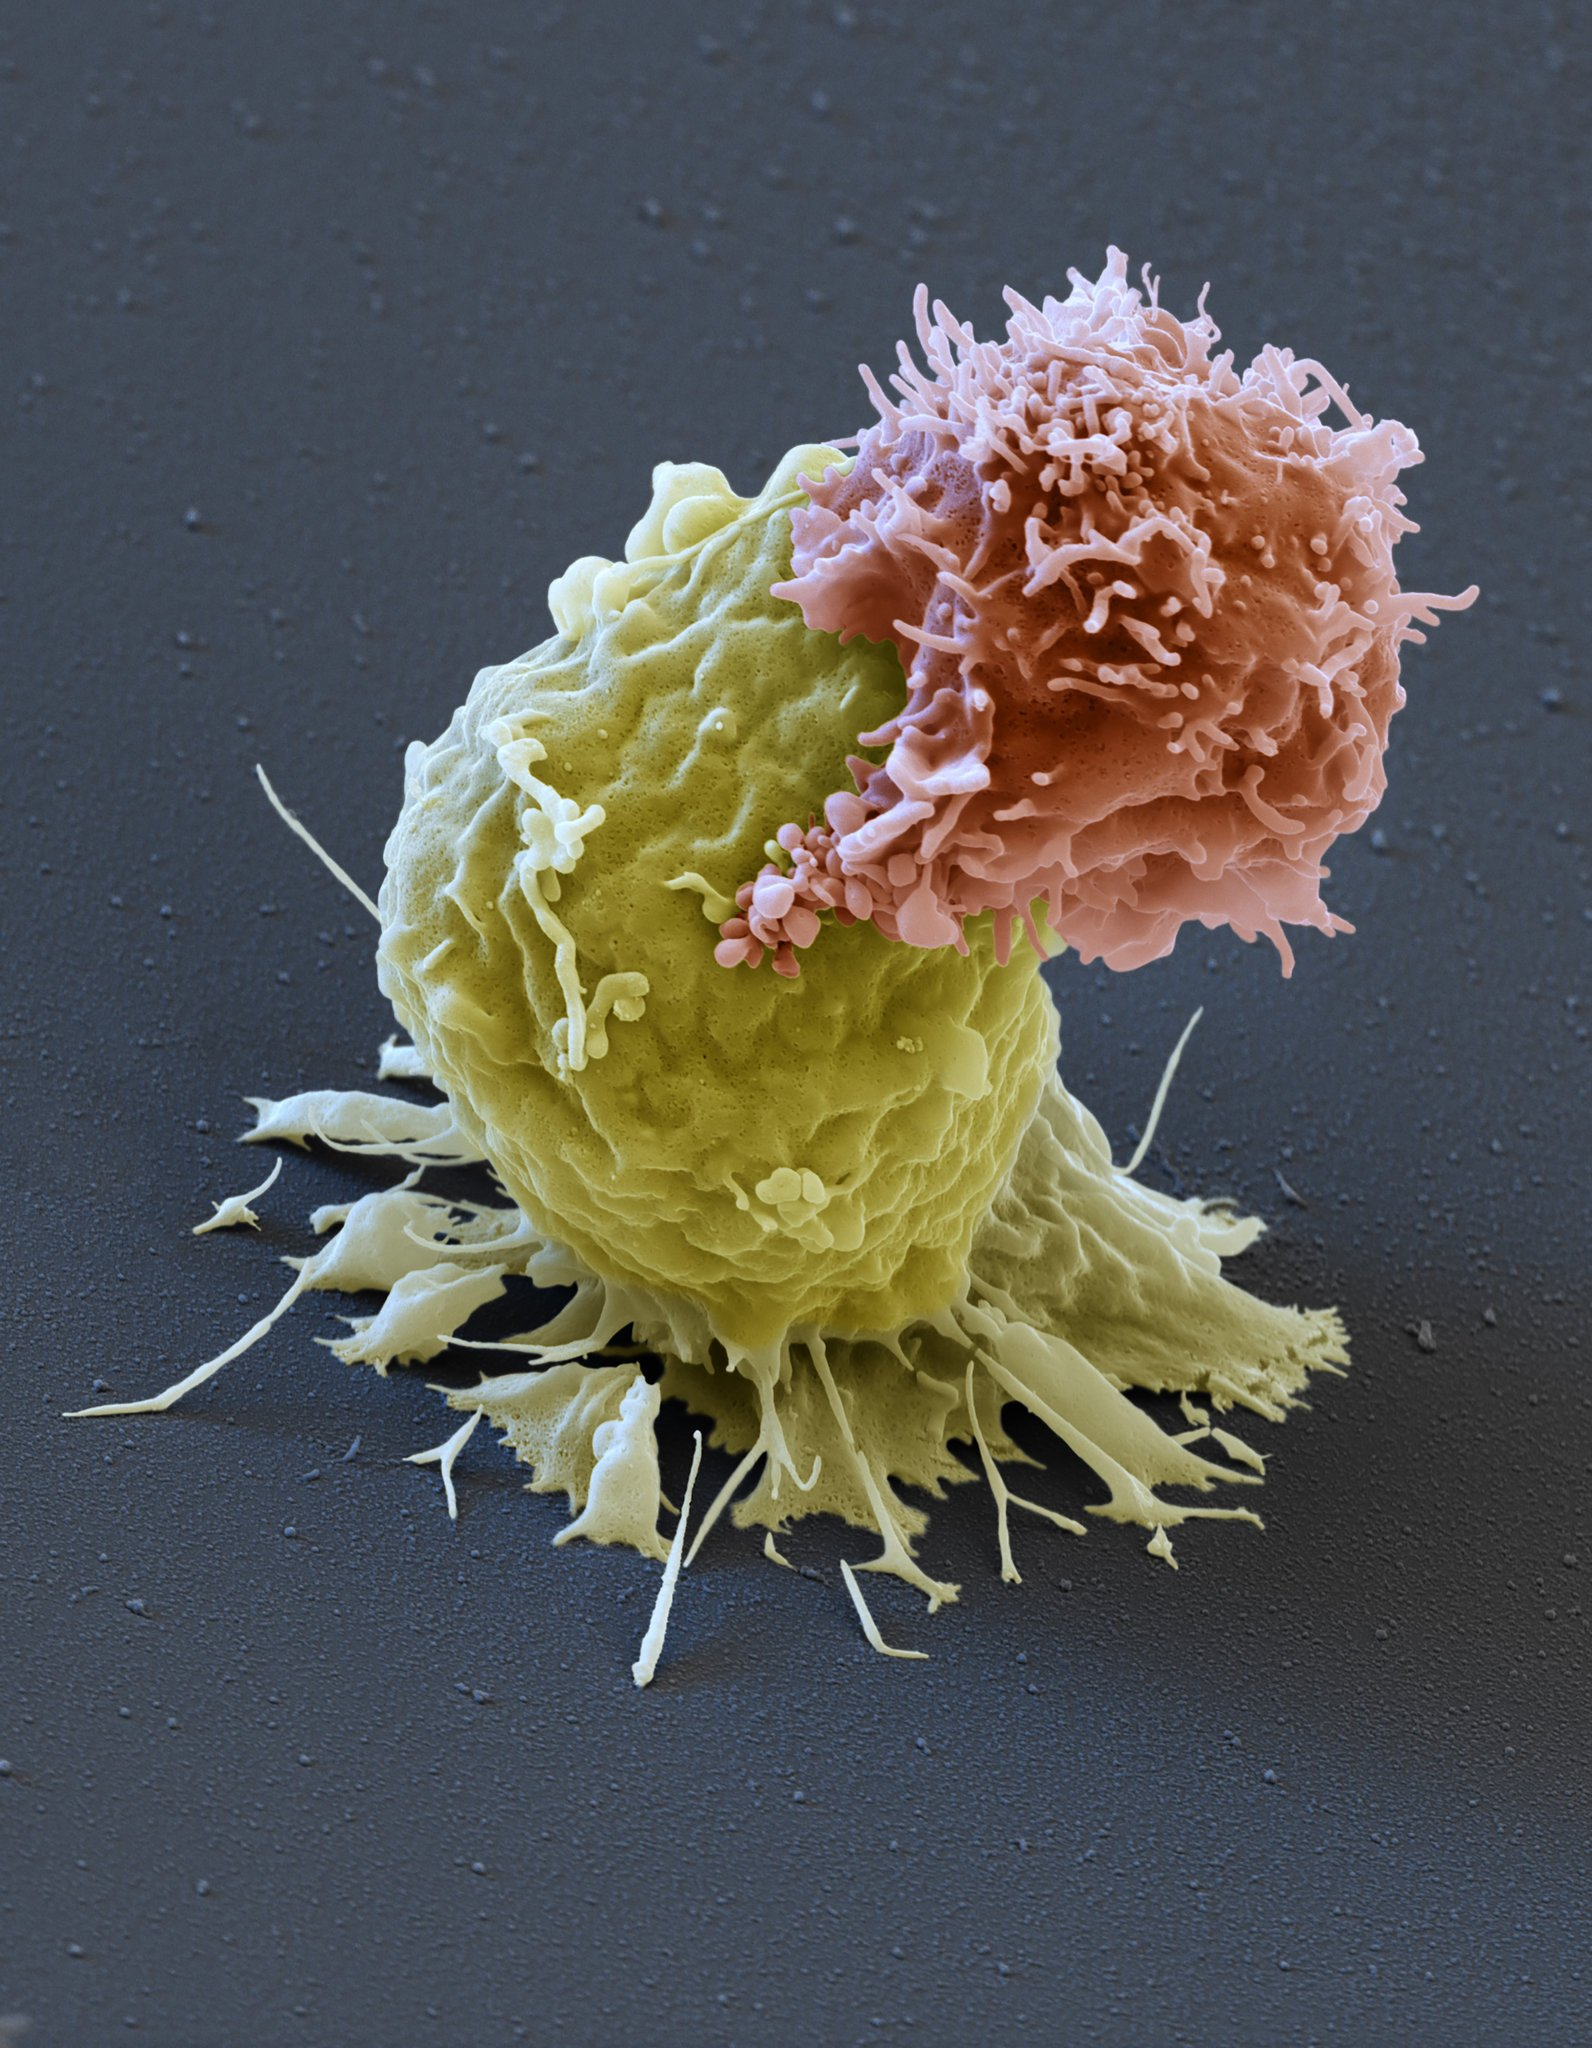 Photo: Cancer fighting T-cell attacking Leukemia cell from New York Times;Eye of Science, via Science Source